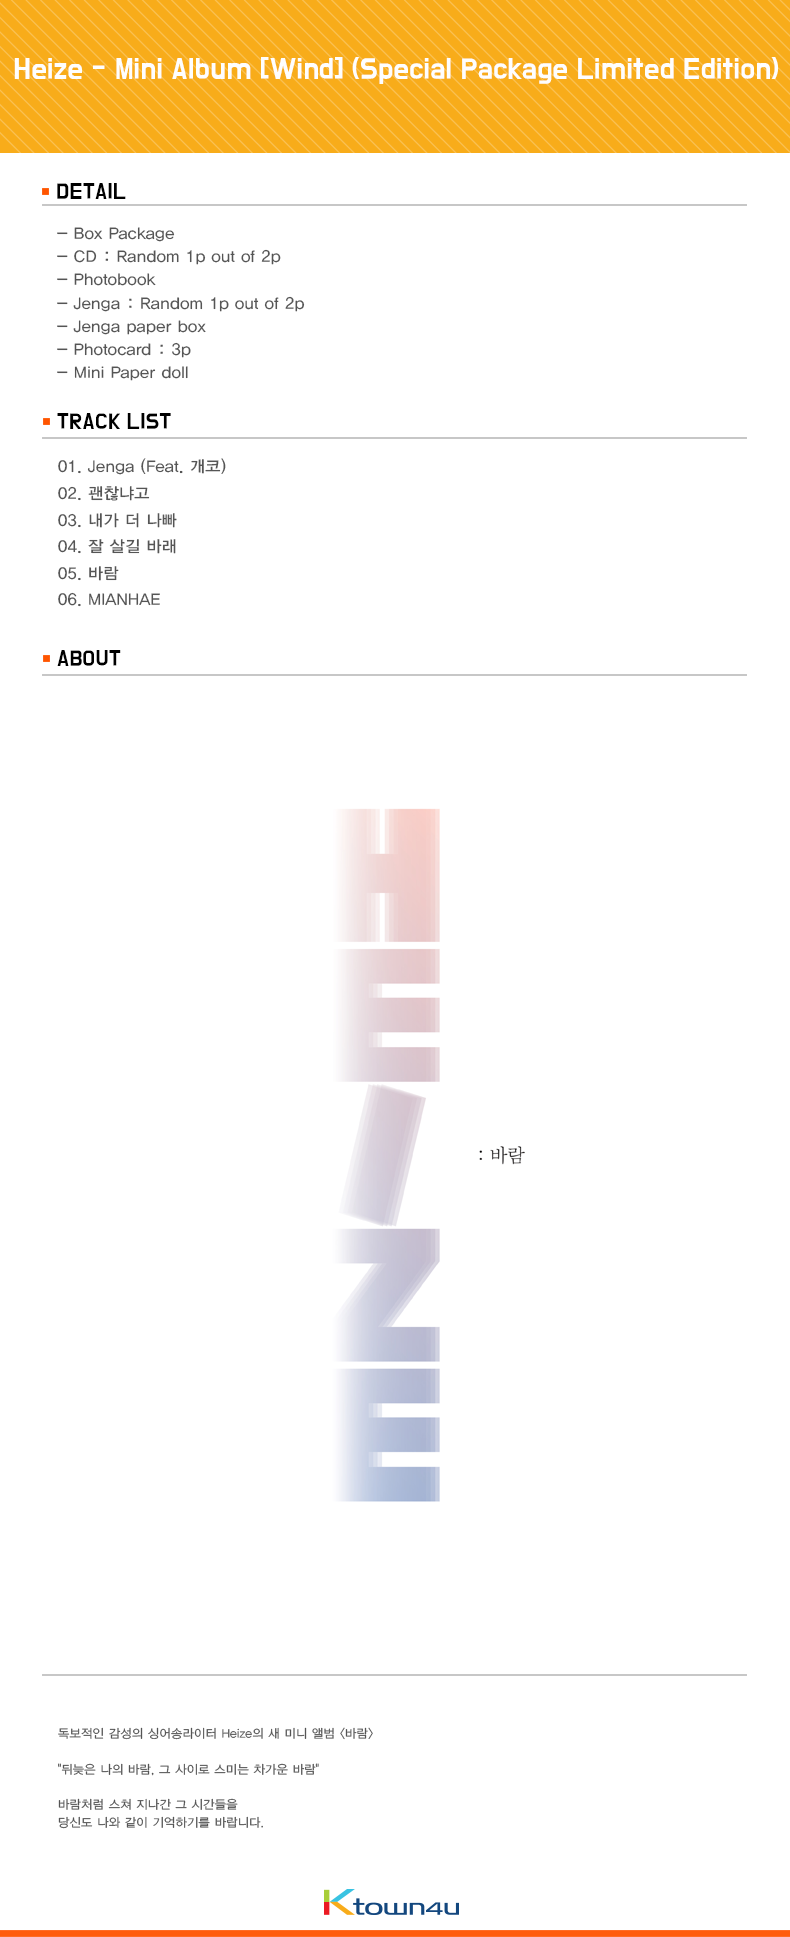 Heize - Mini Album [Wind] (Special Package Limited Edition)